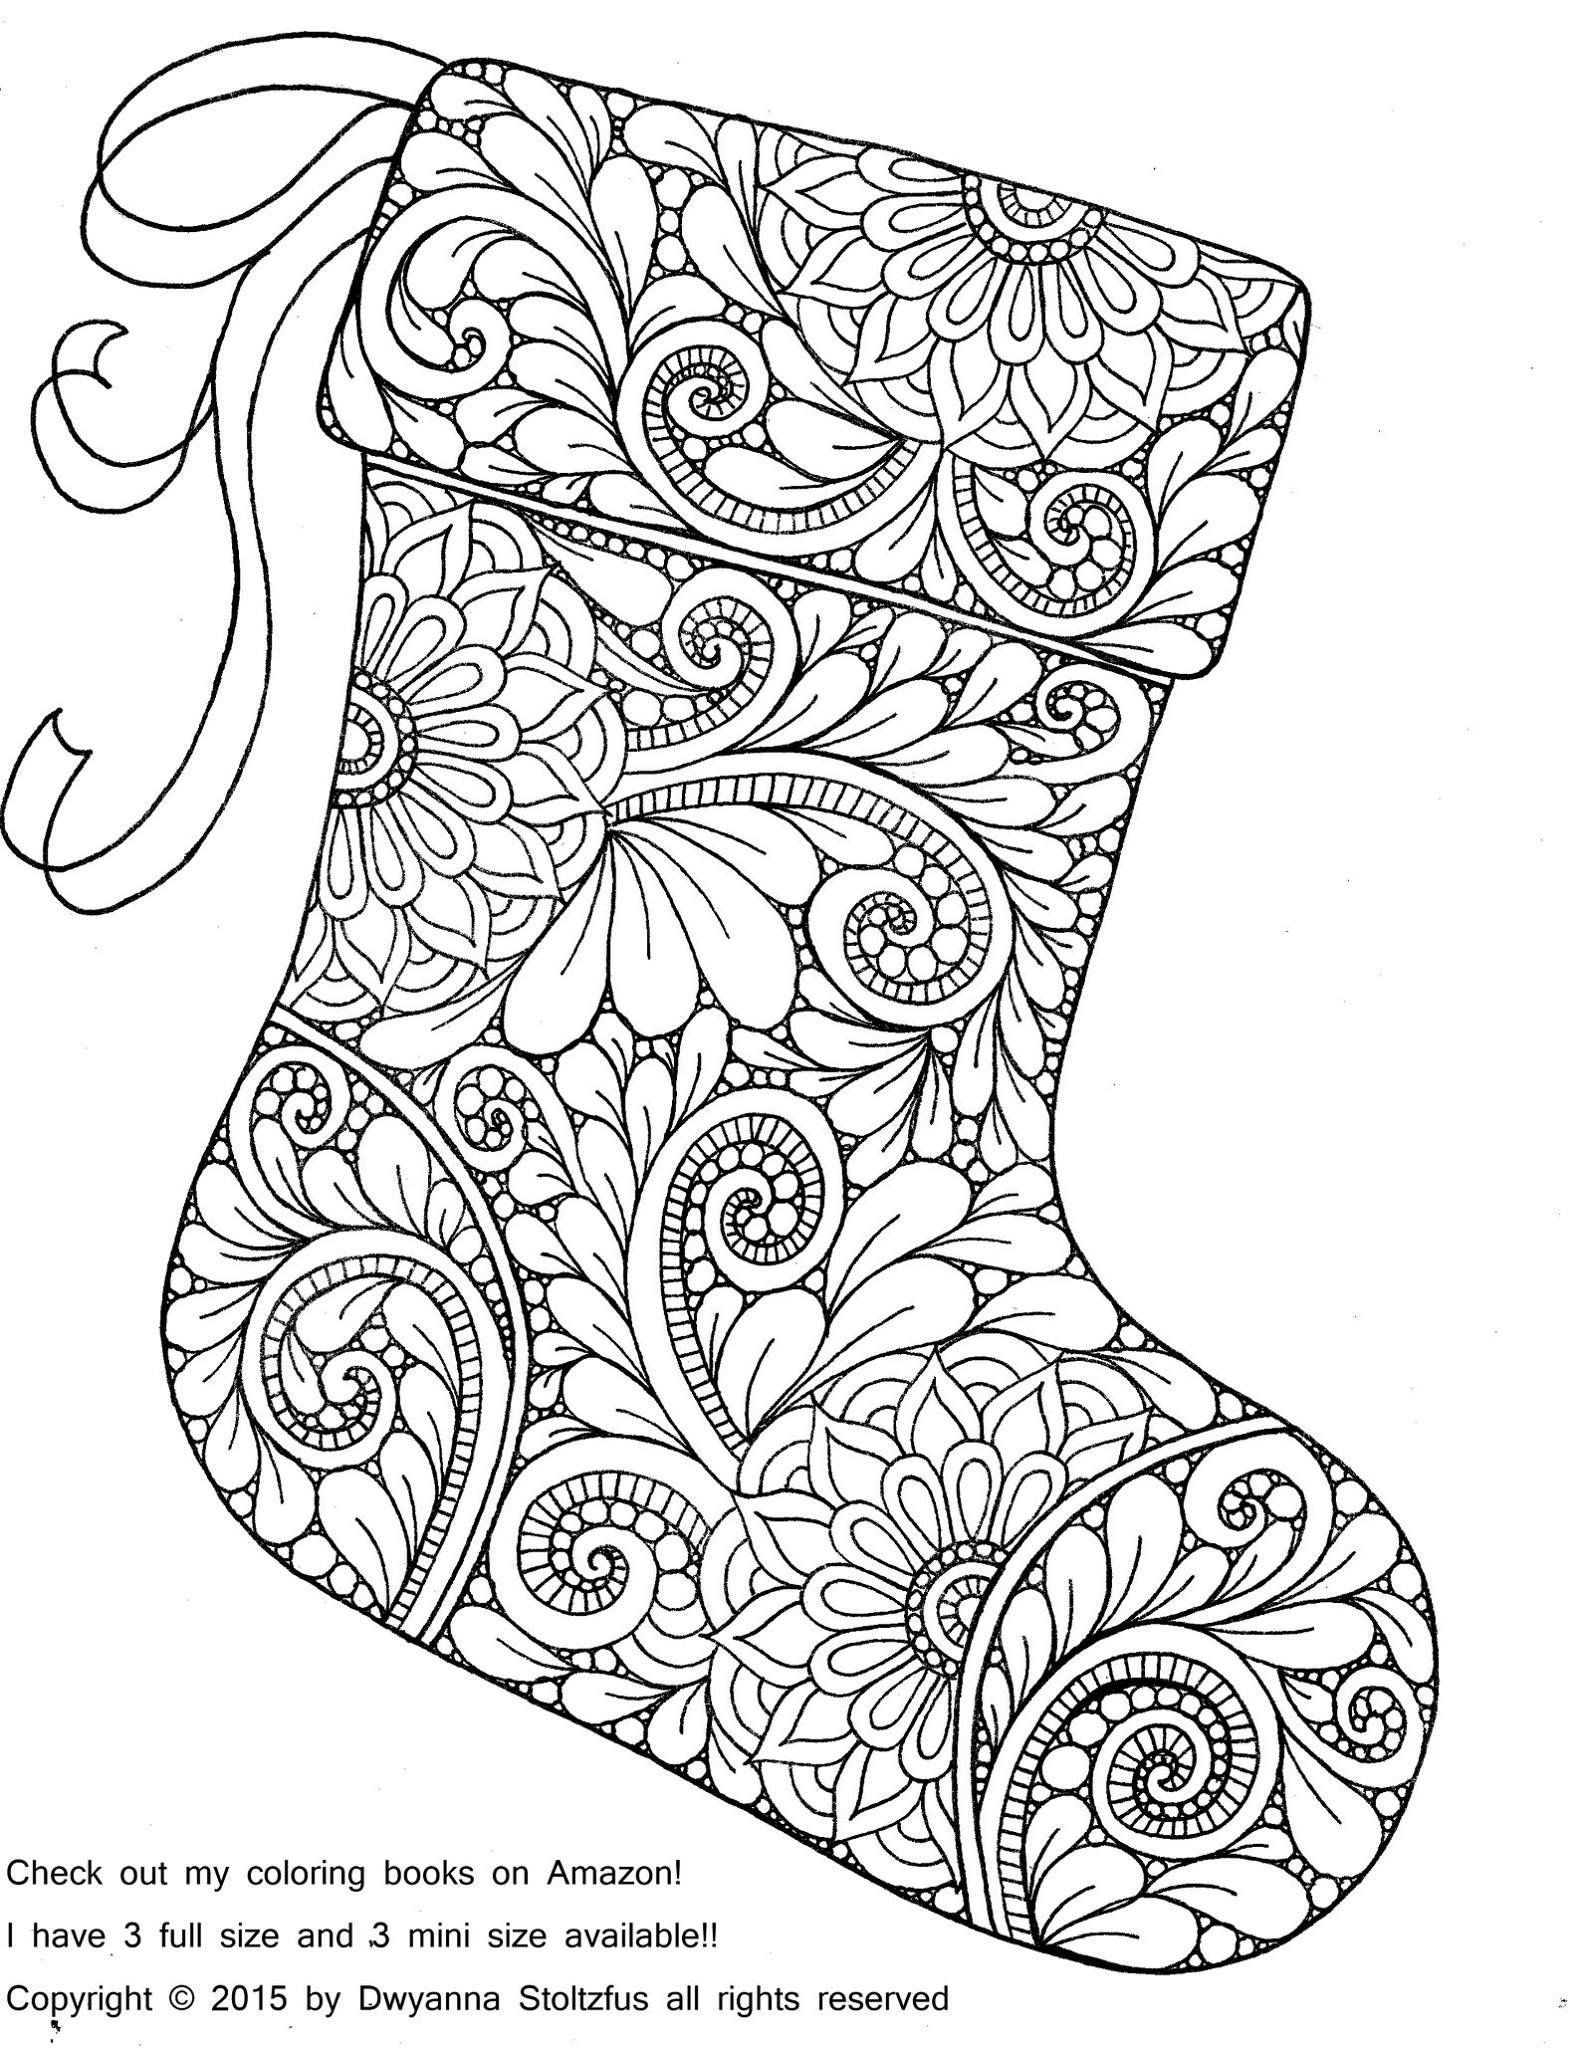 Pin by Laure Leo on Coloriages Noël | Pinterest | Adult coloring ...